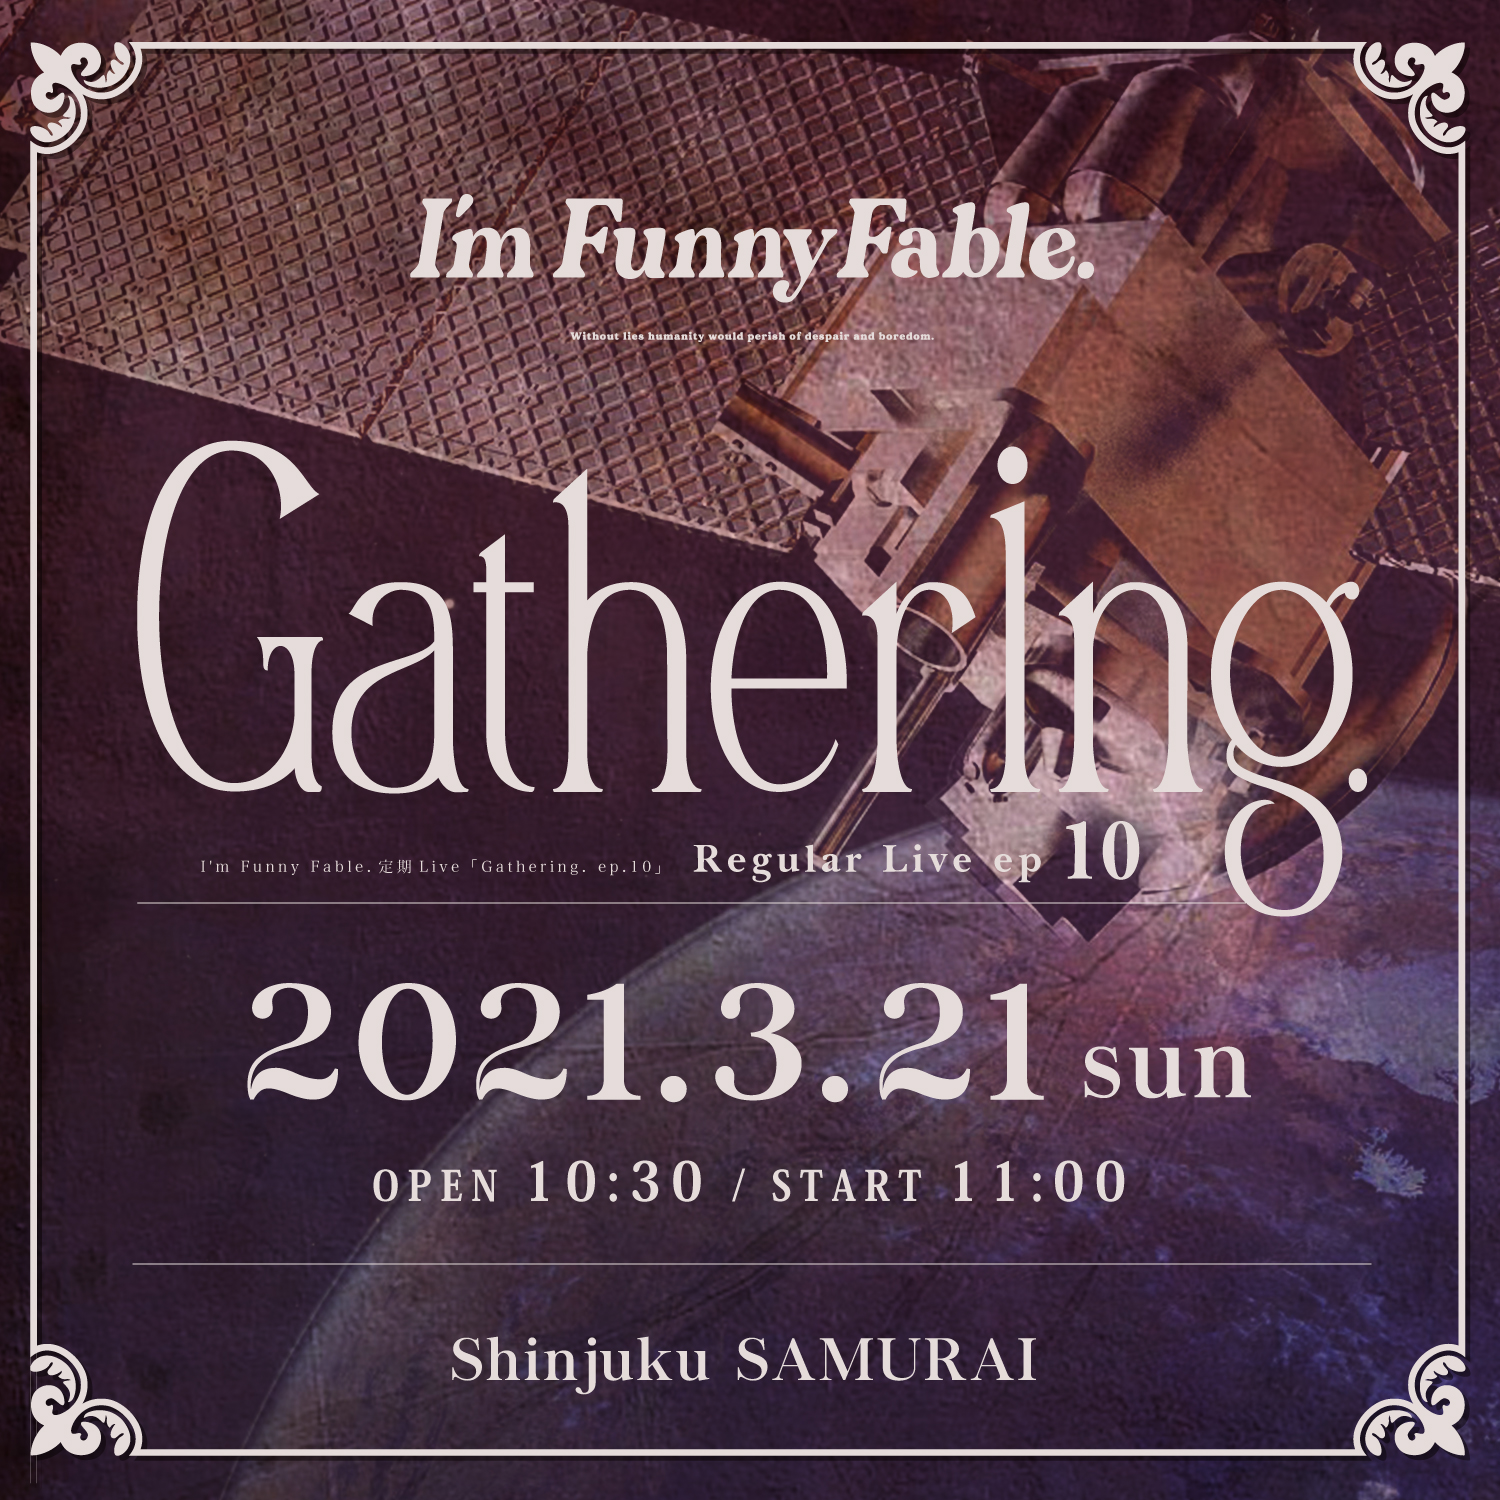 I'm Funny Fable.定期Live「Gathering. ep.10」